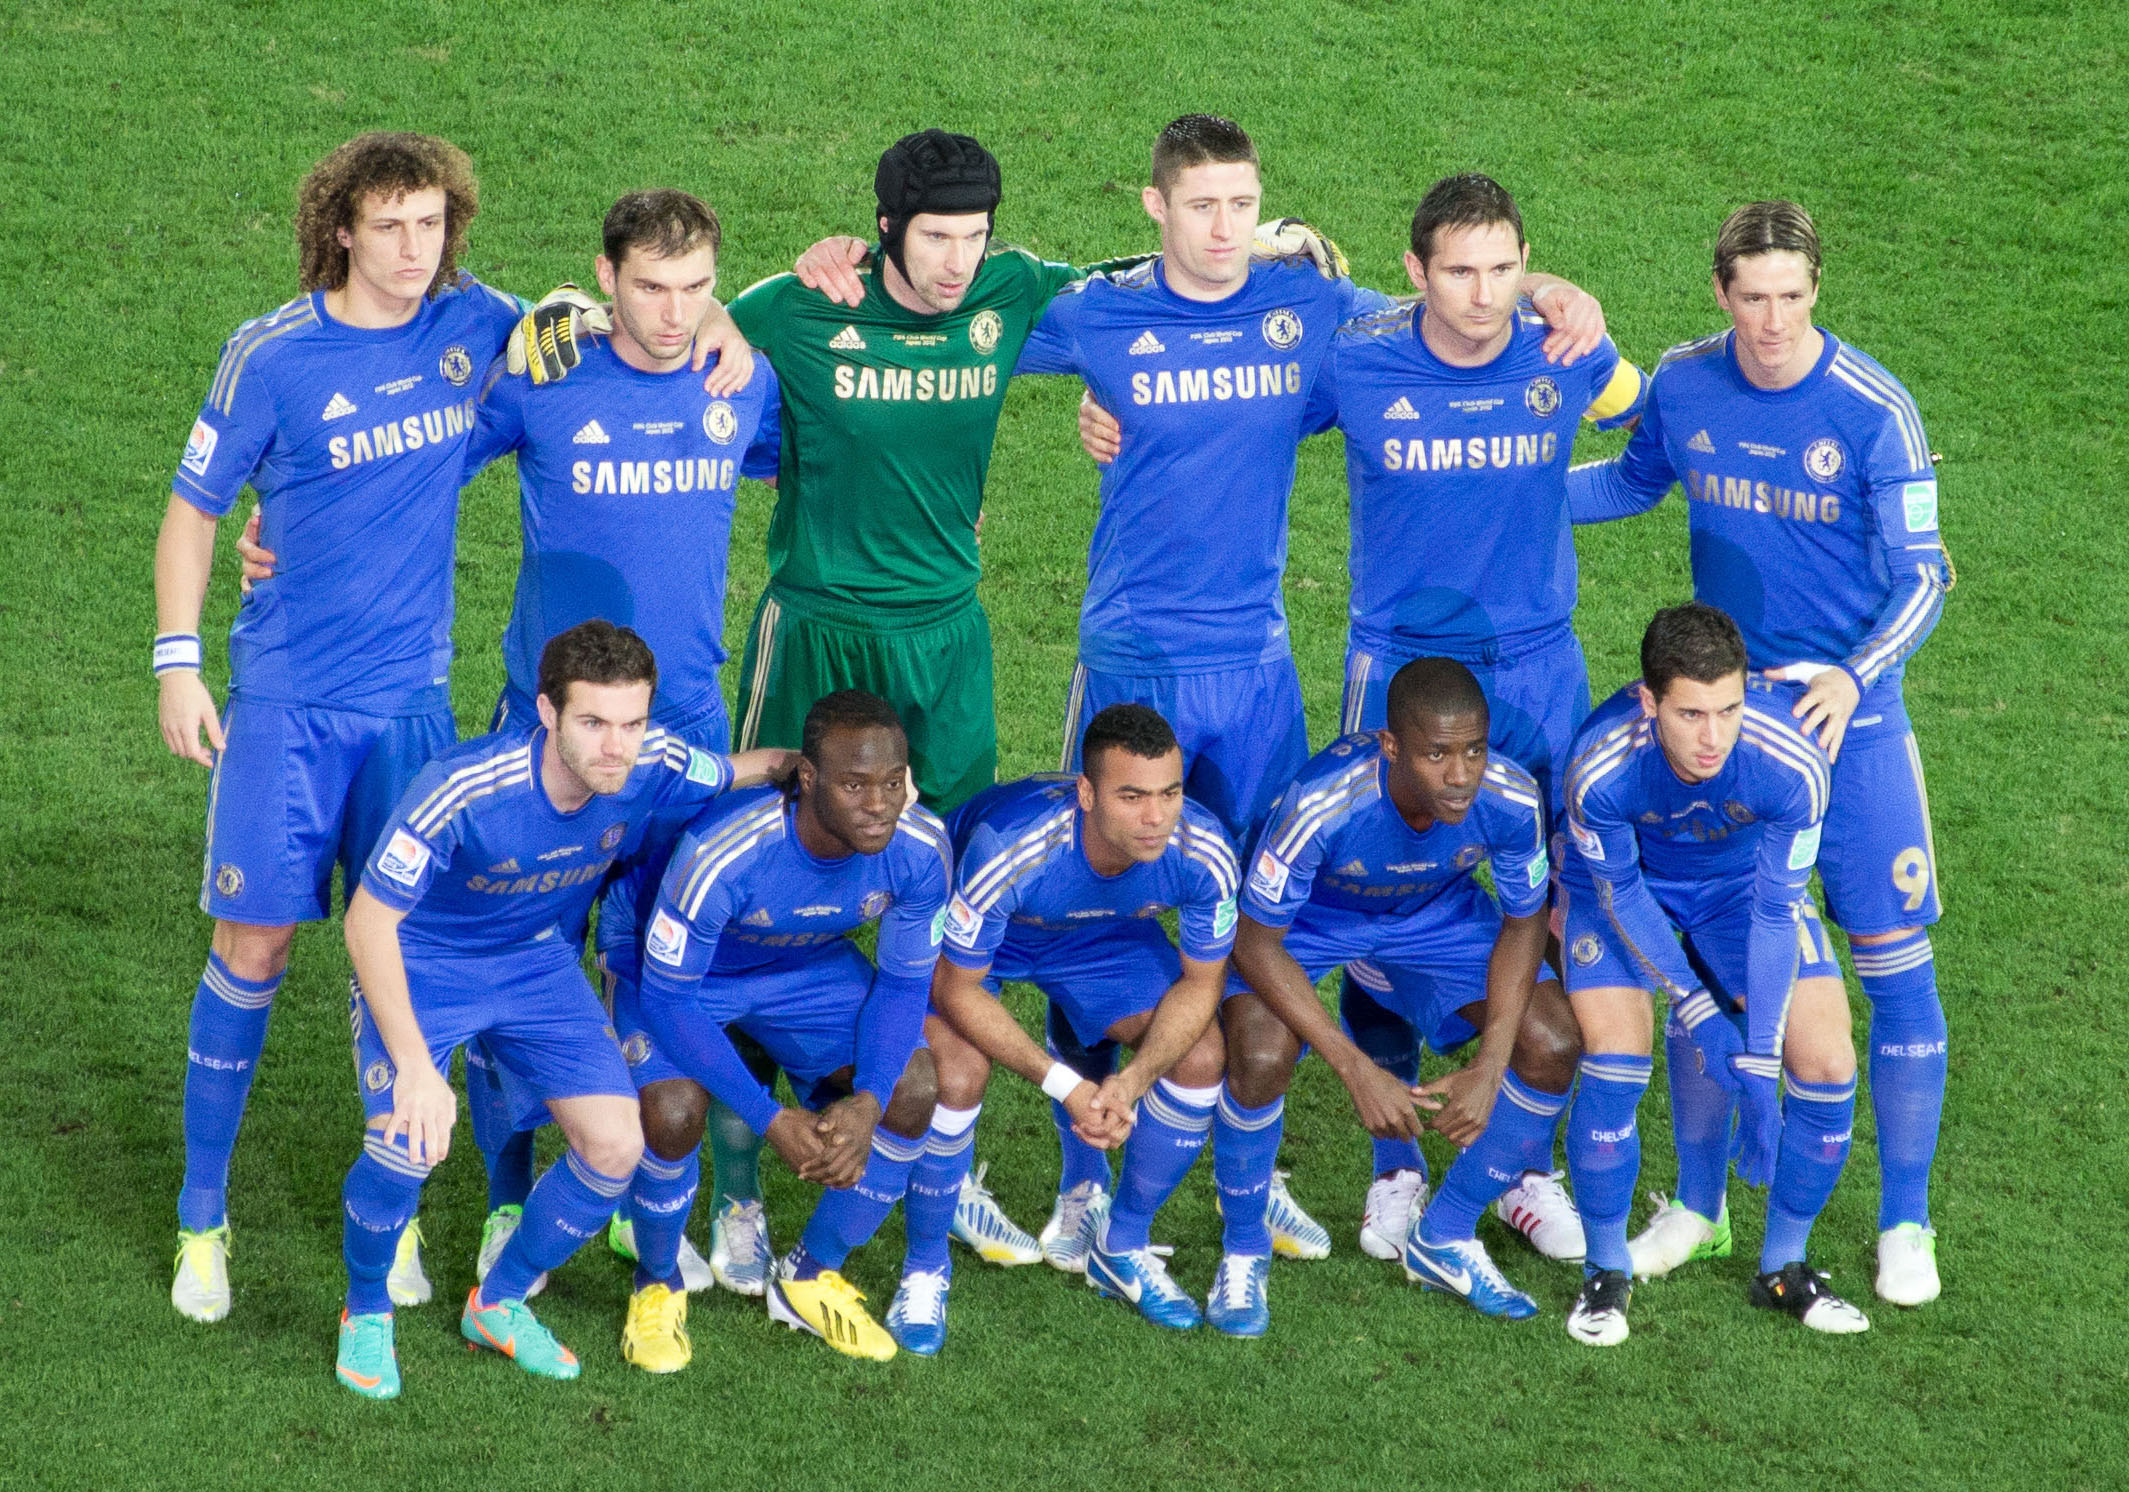 Description Chelsea FC 2012 Club World Cup Final Starting XI